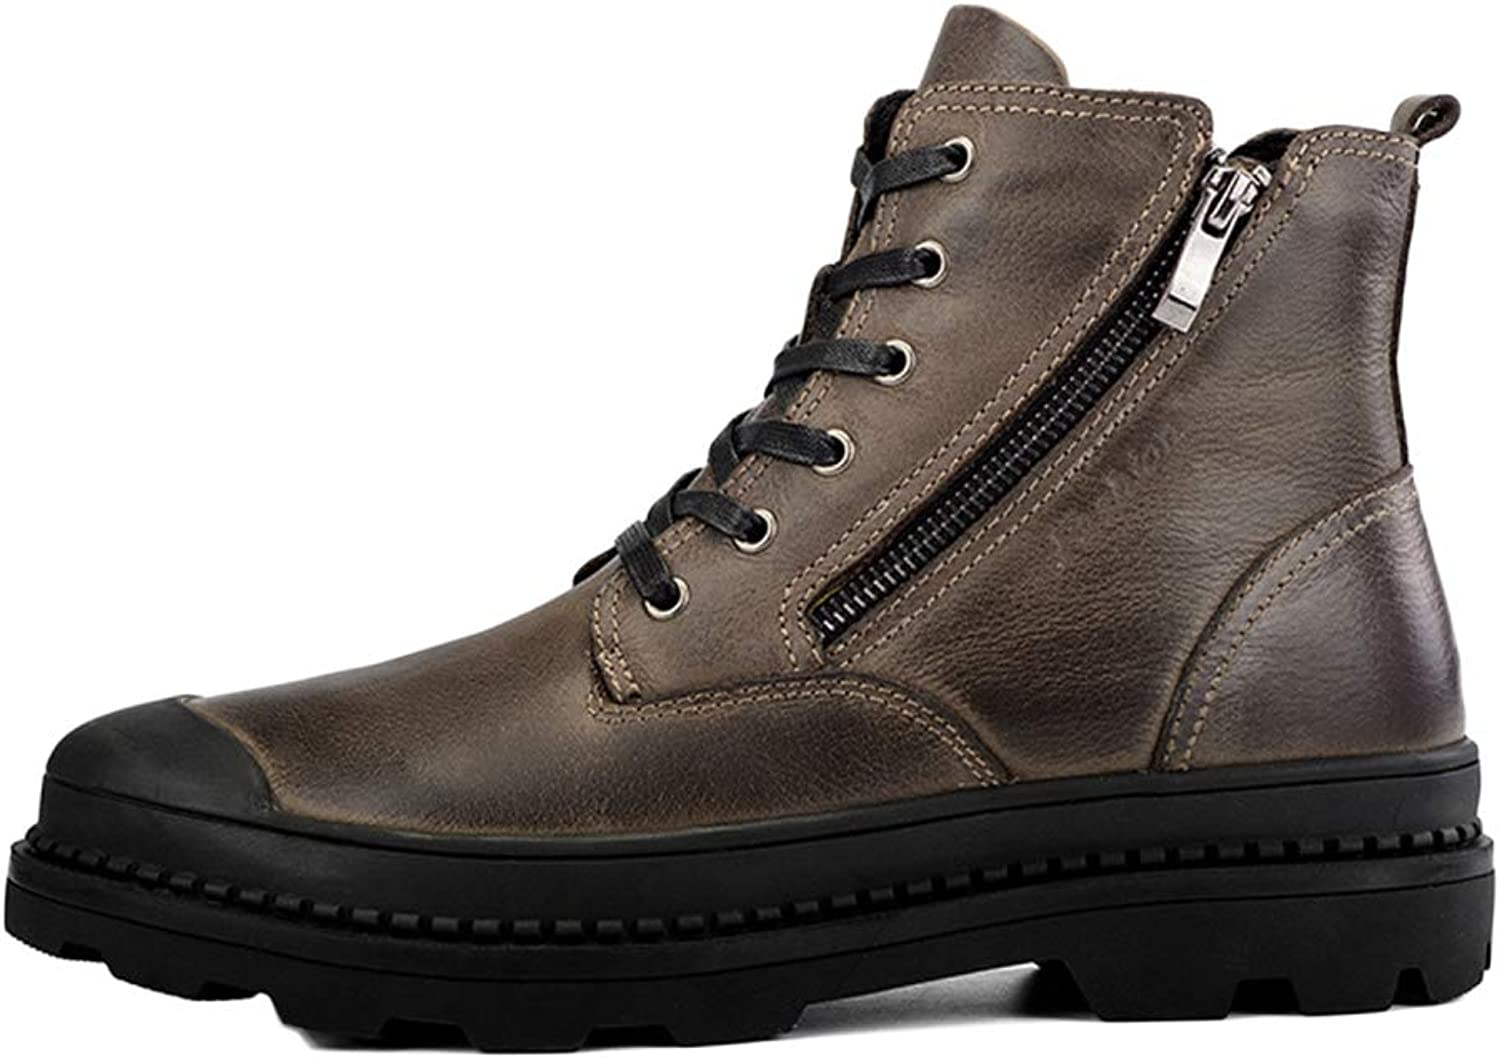 Men's Boots Safety Boots Waterproof Trainers shoes High Help Martin